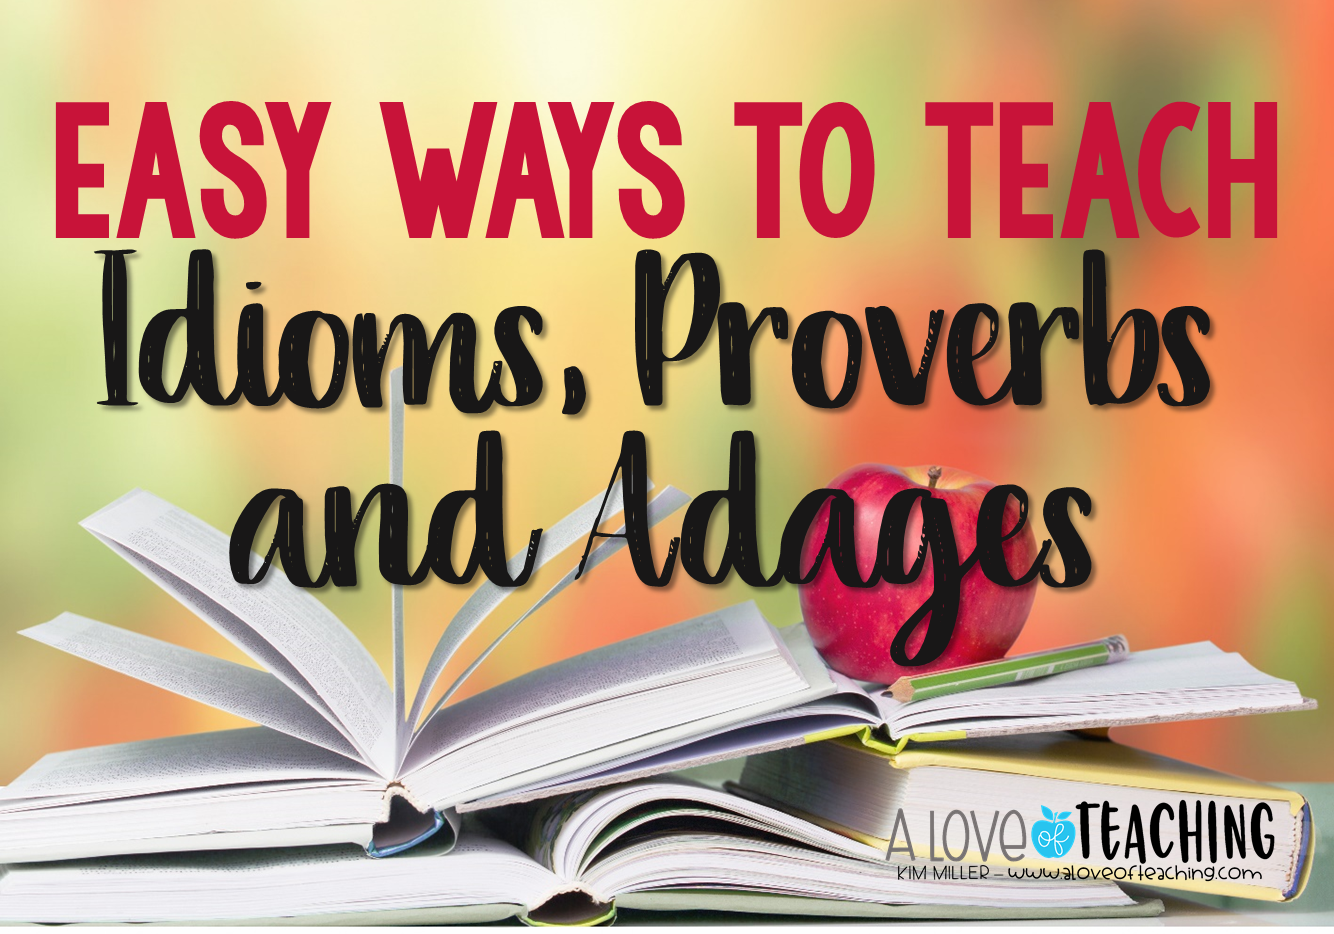 Teaching idioms proverbs and adages in the classroom a love of teaching idioms proverbs and adages in the classroom a love of teaching altavistaventures Images